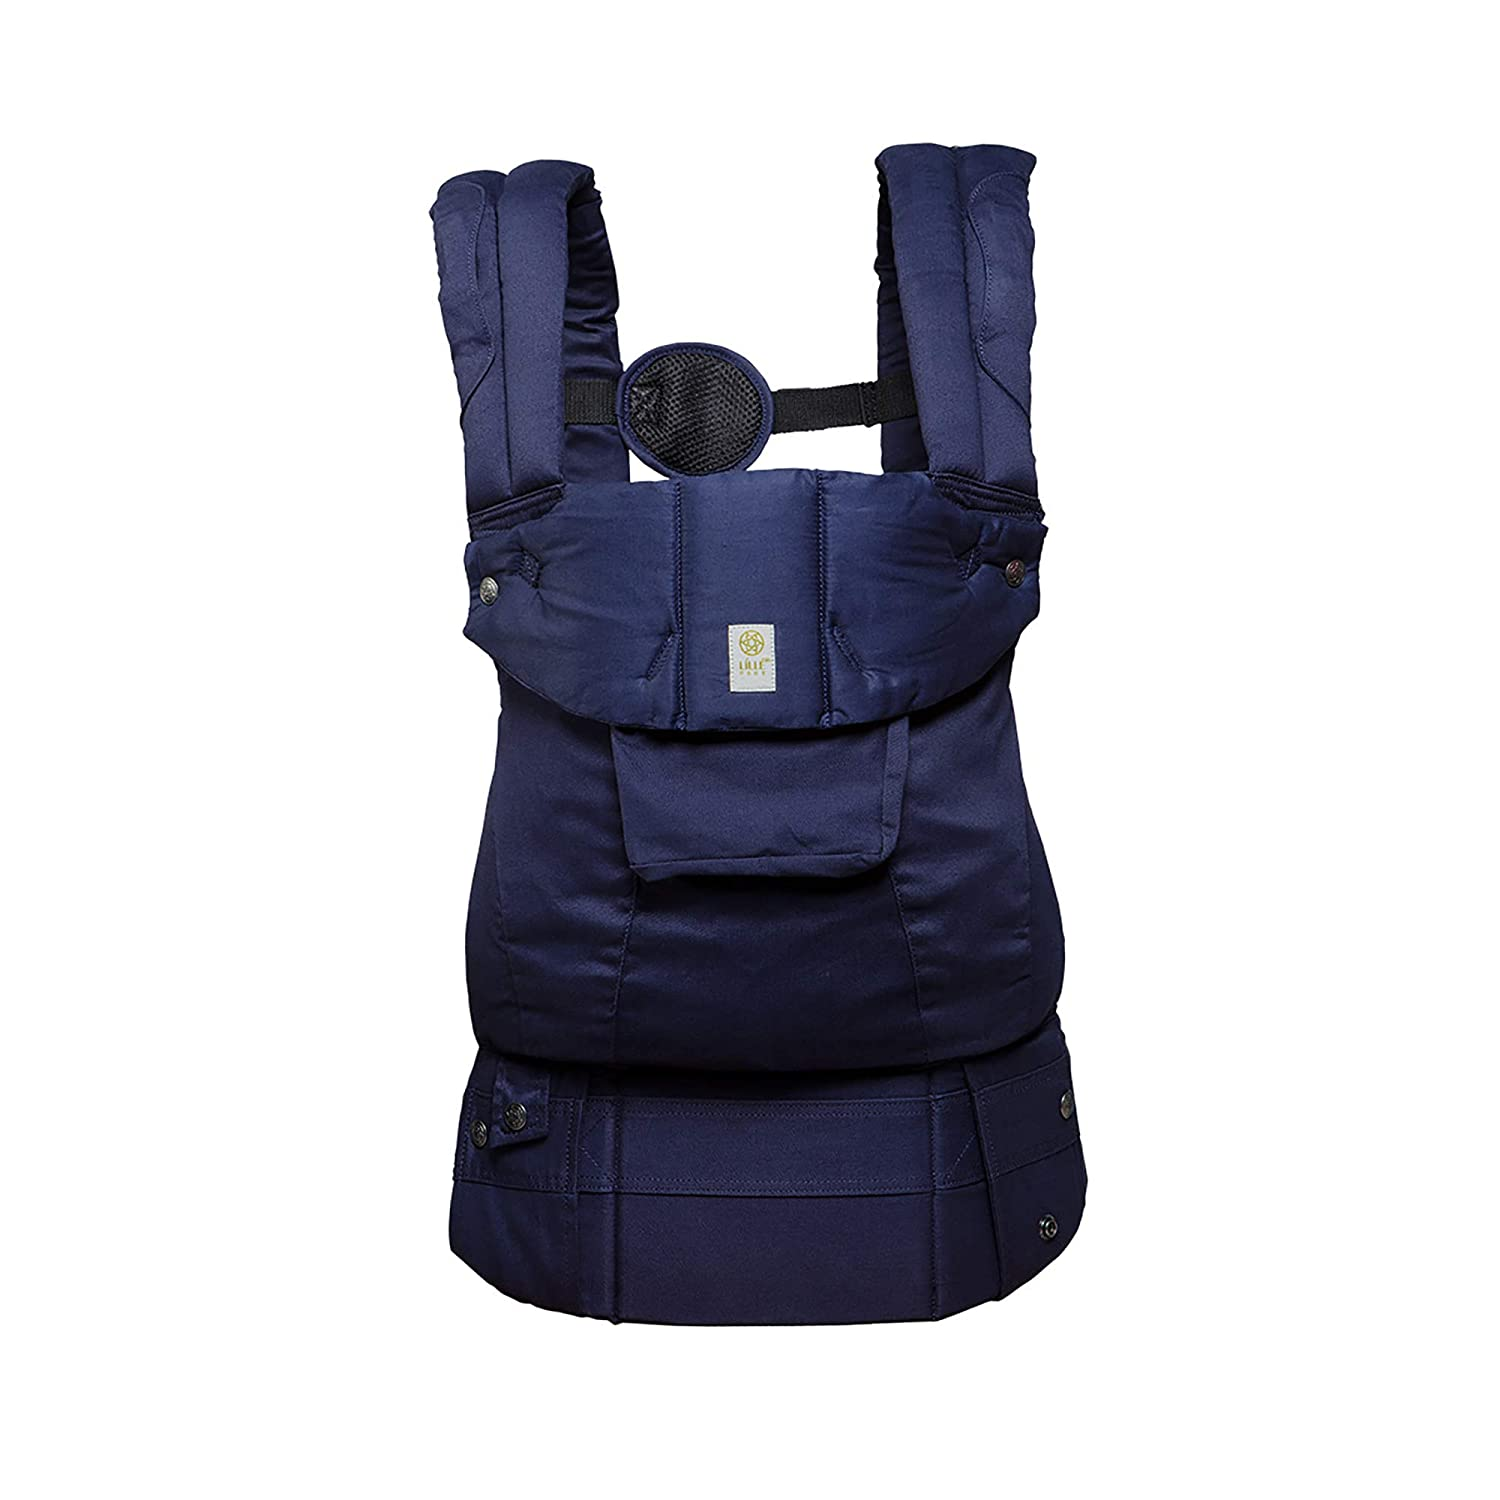 L LL baby Complete Organi-Touch SIX-Position Ergonomic Baby Child Carrier, Blue Moonlight – Organic Cotton